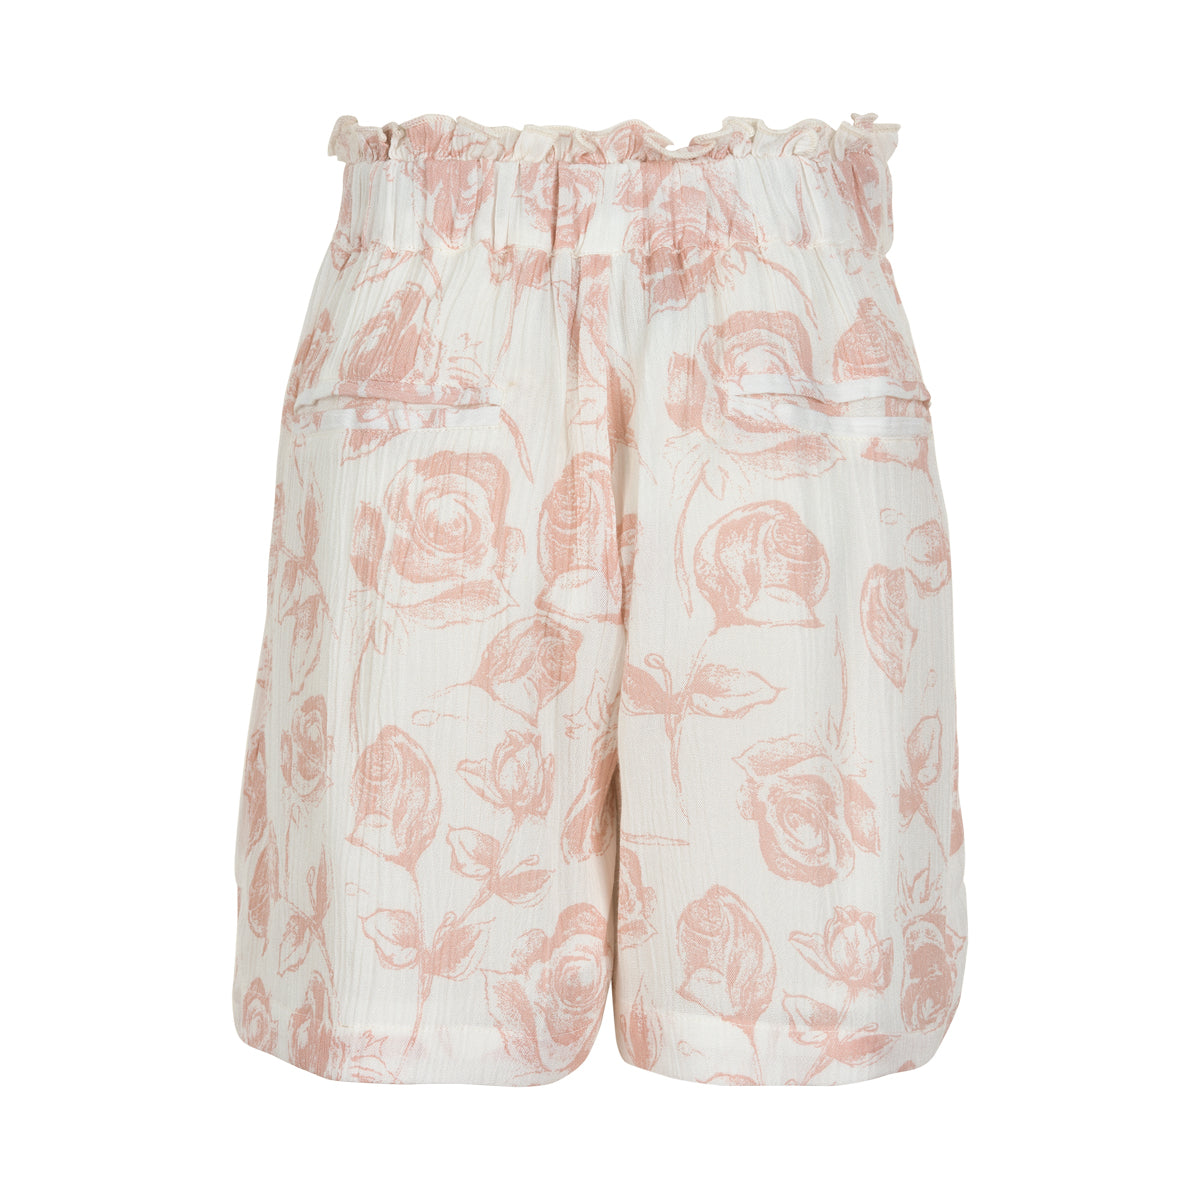 Creamie - Shorts Roses (821083) - Cloud